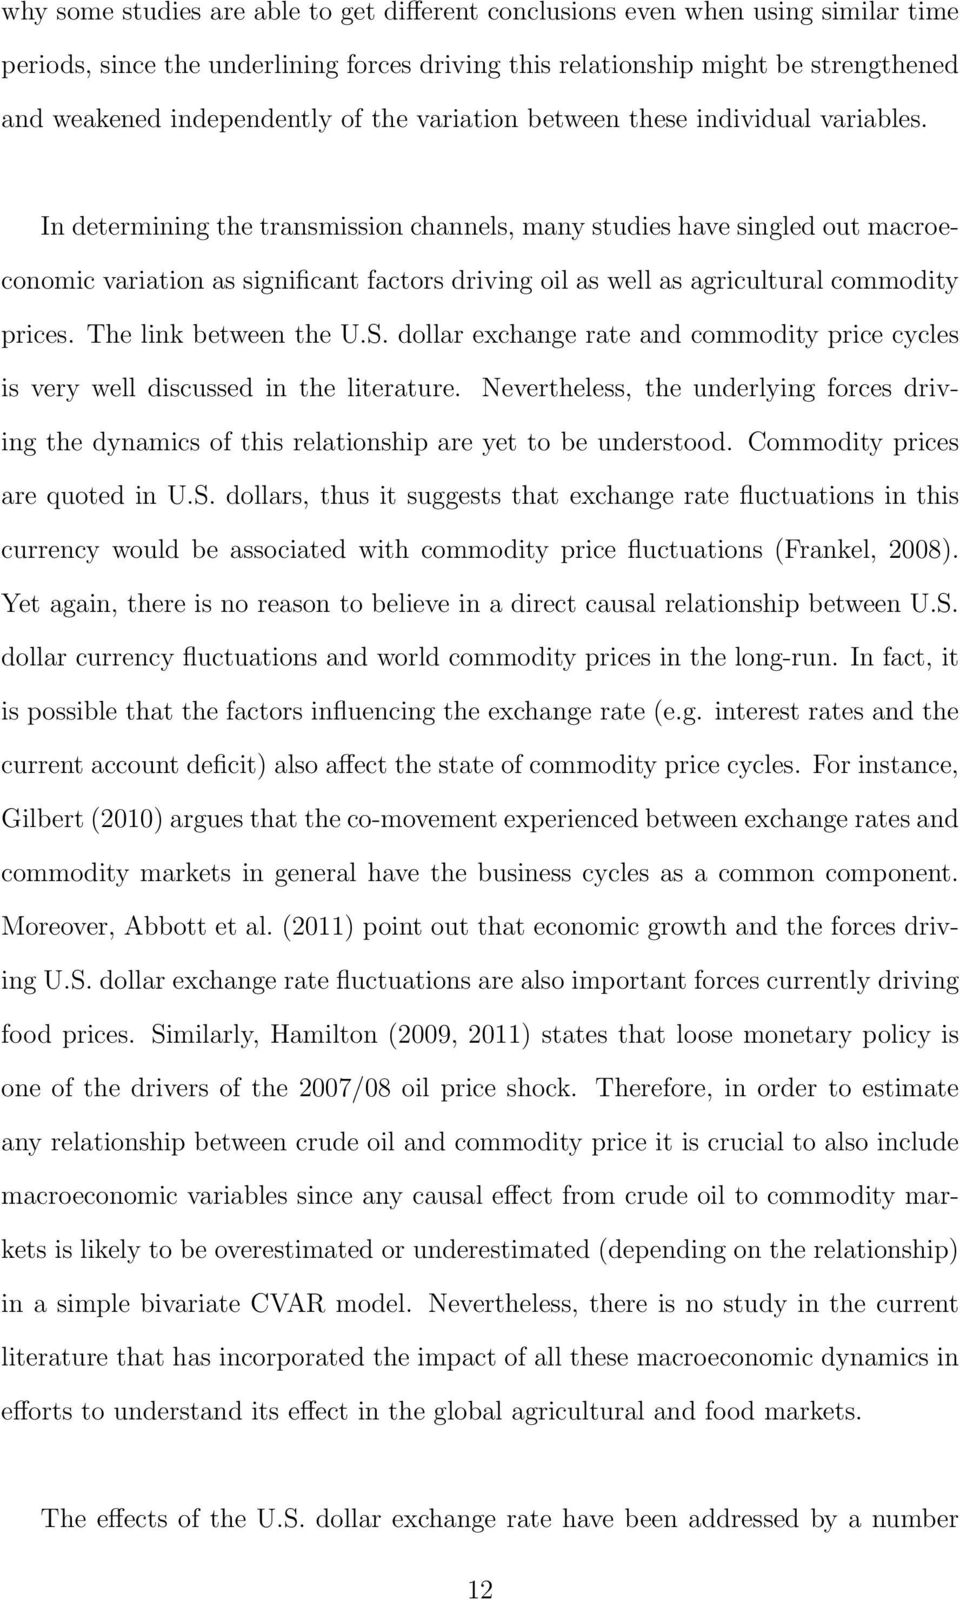 In determining the transmission channels, many studies have singled out macroeconomic variation as significant factors driving oil as well as agricultural commodity prices. The link between the U.S.